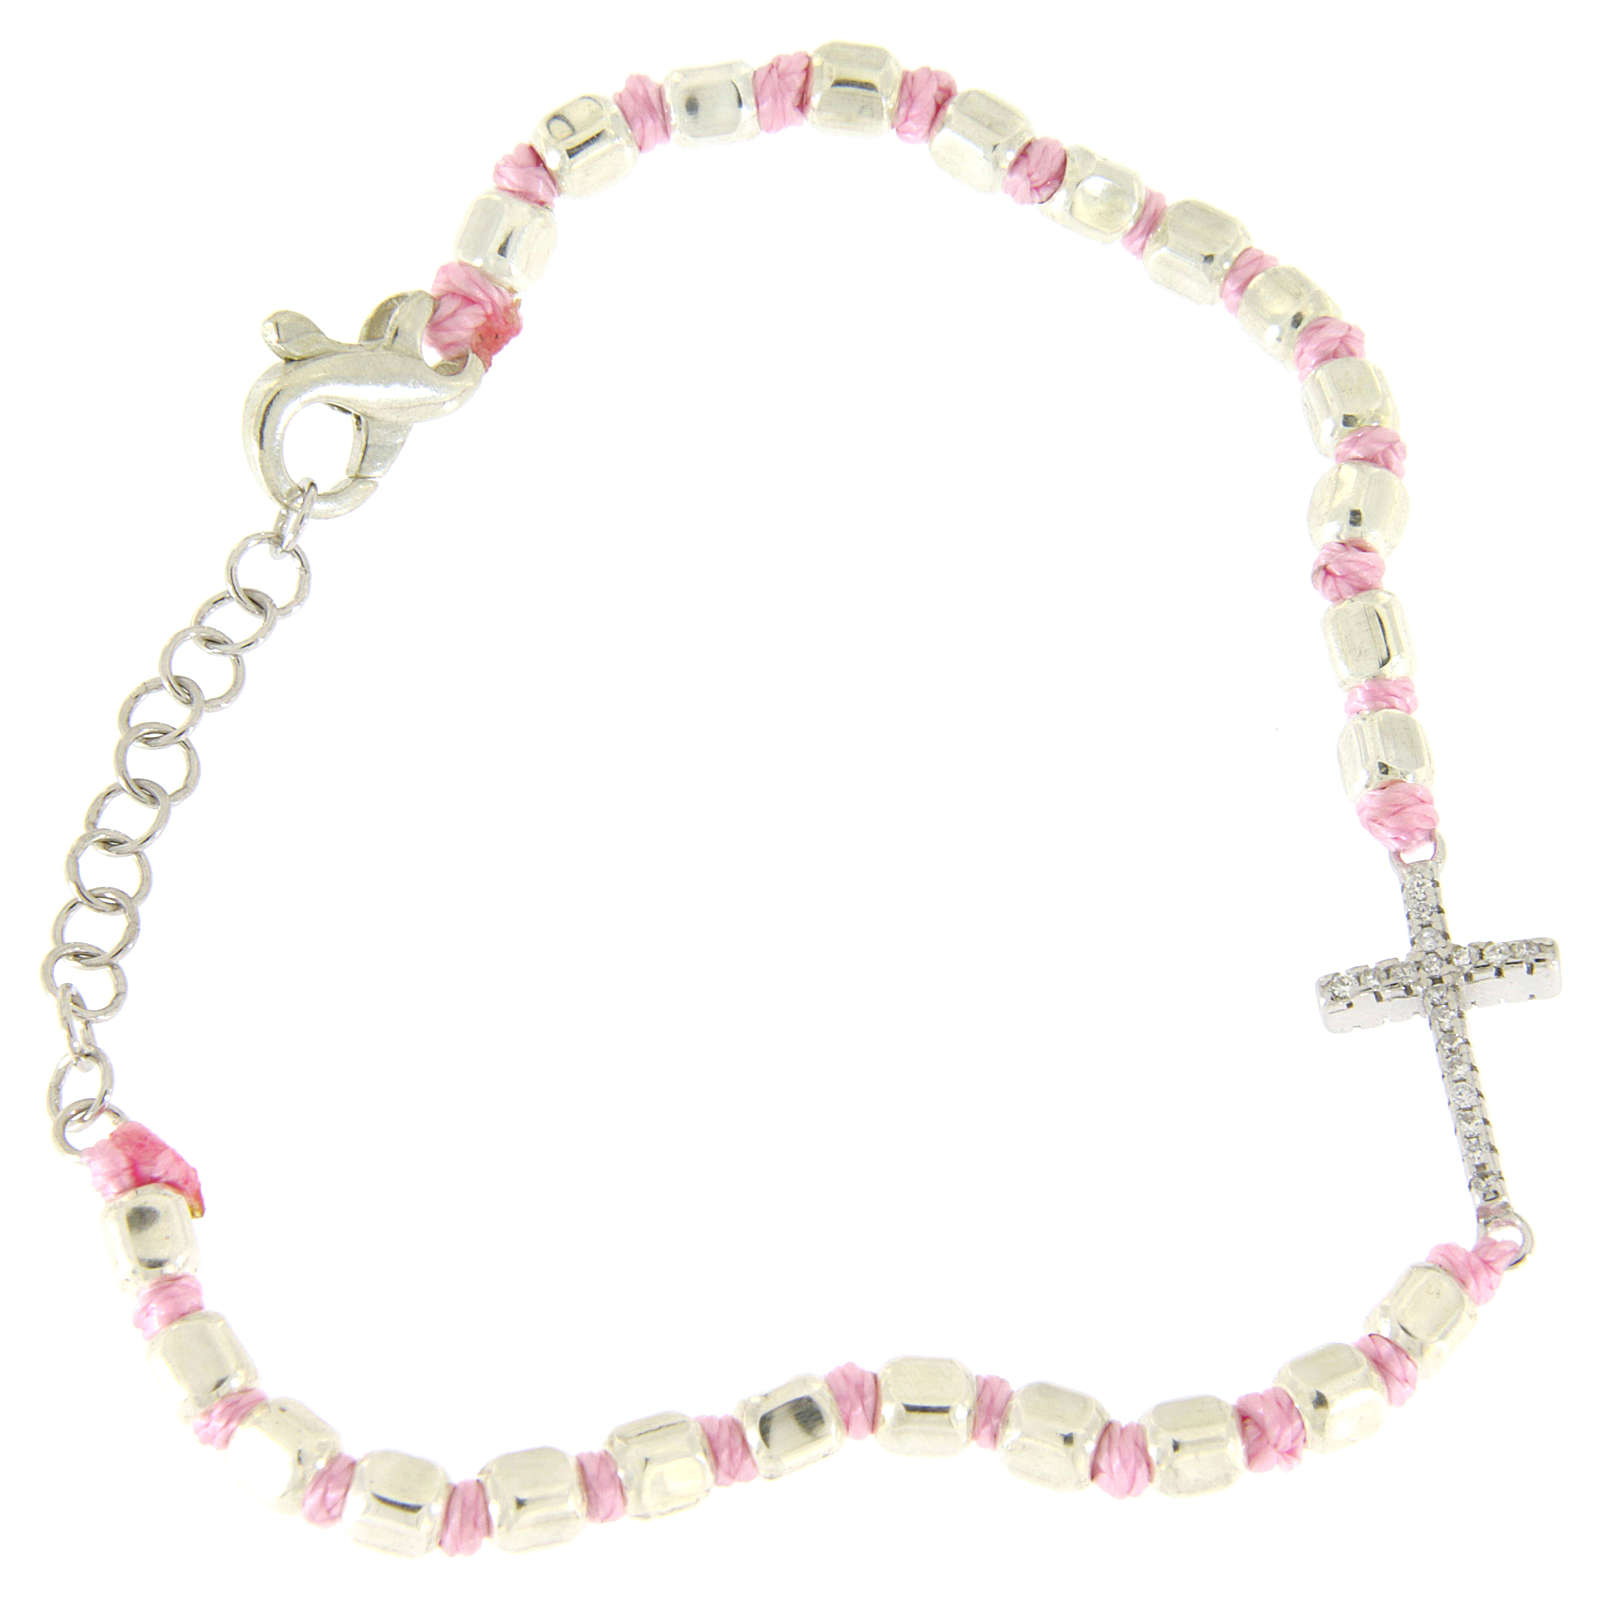 Bracelet with cubic sphere 2 mm, zirconate cross, pink cord with knot 4